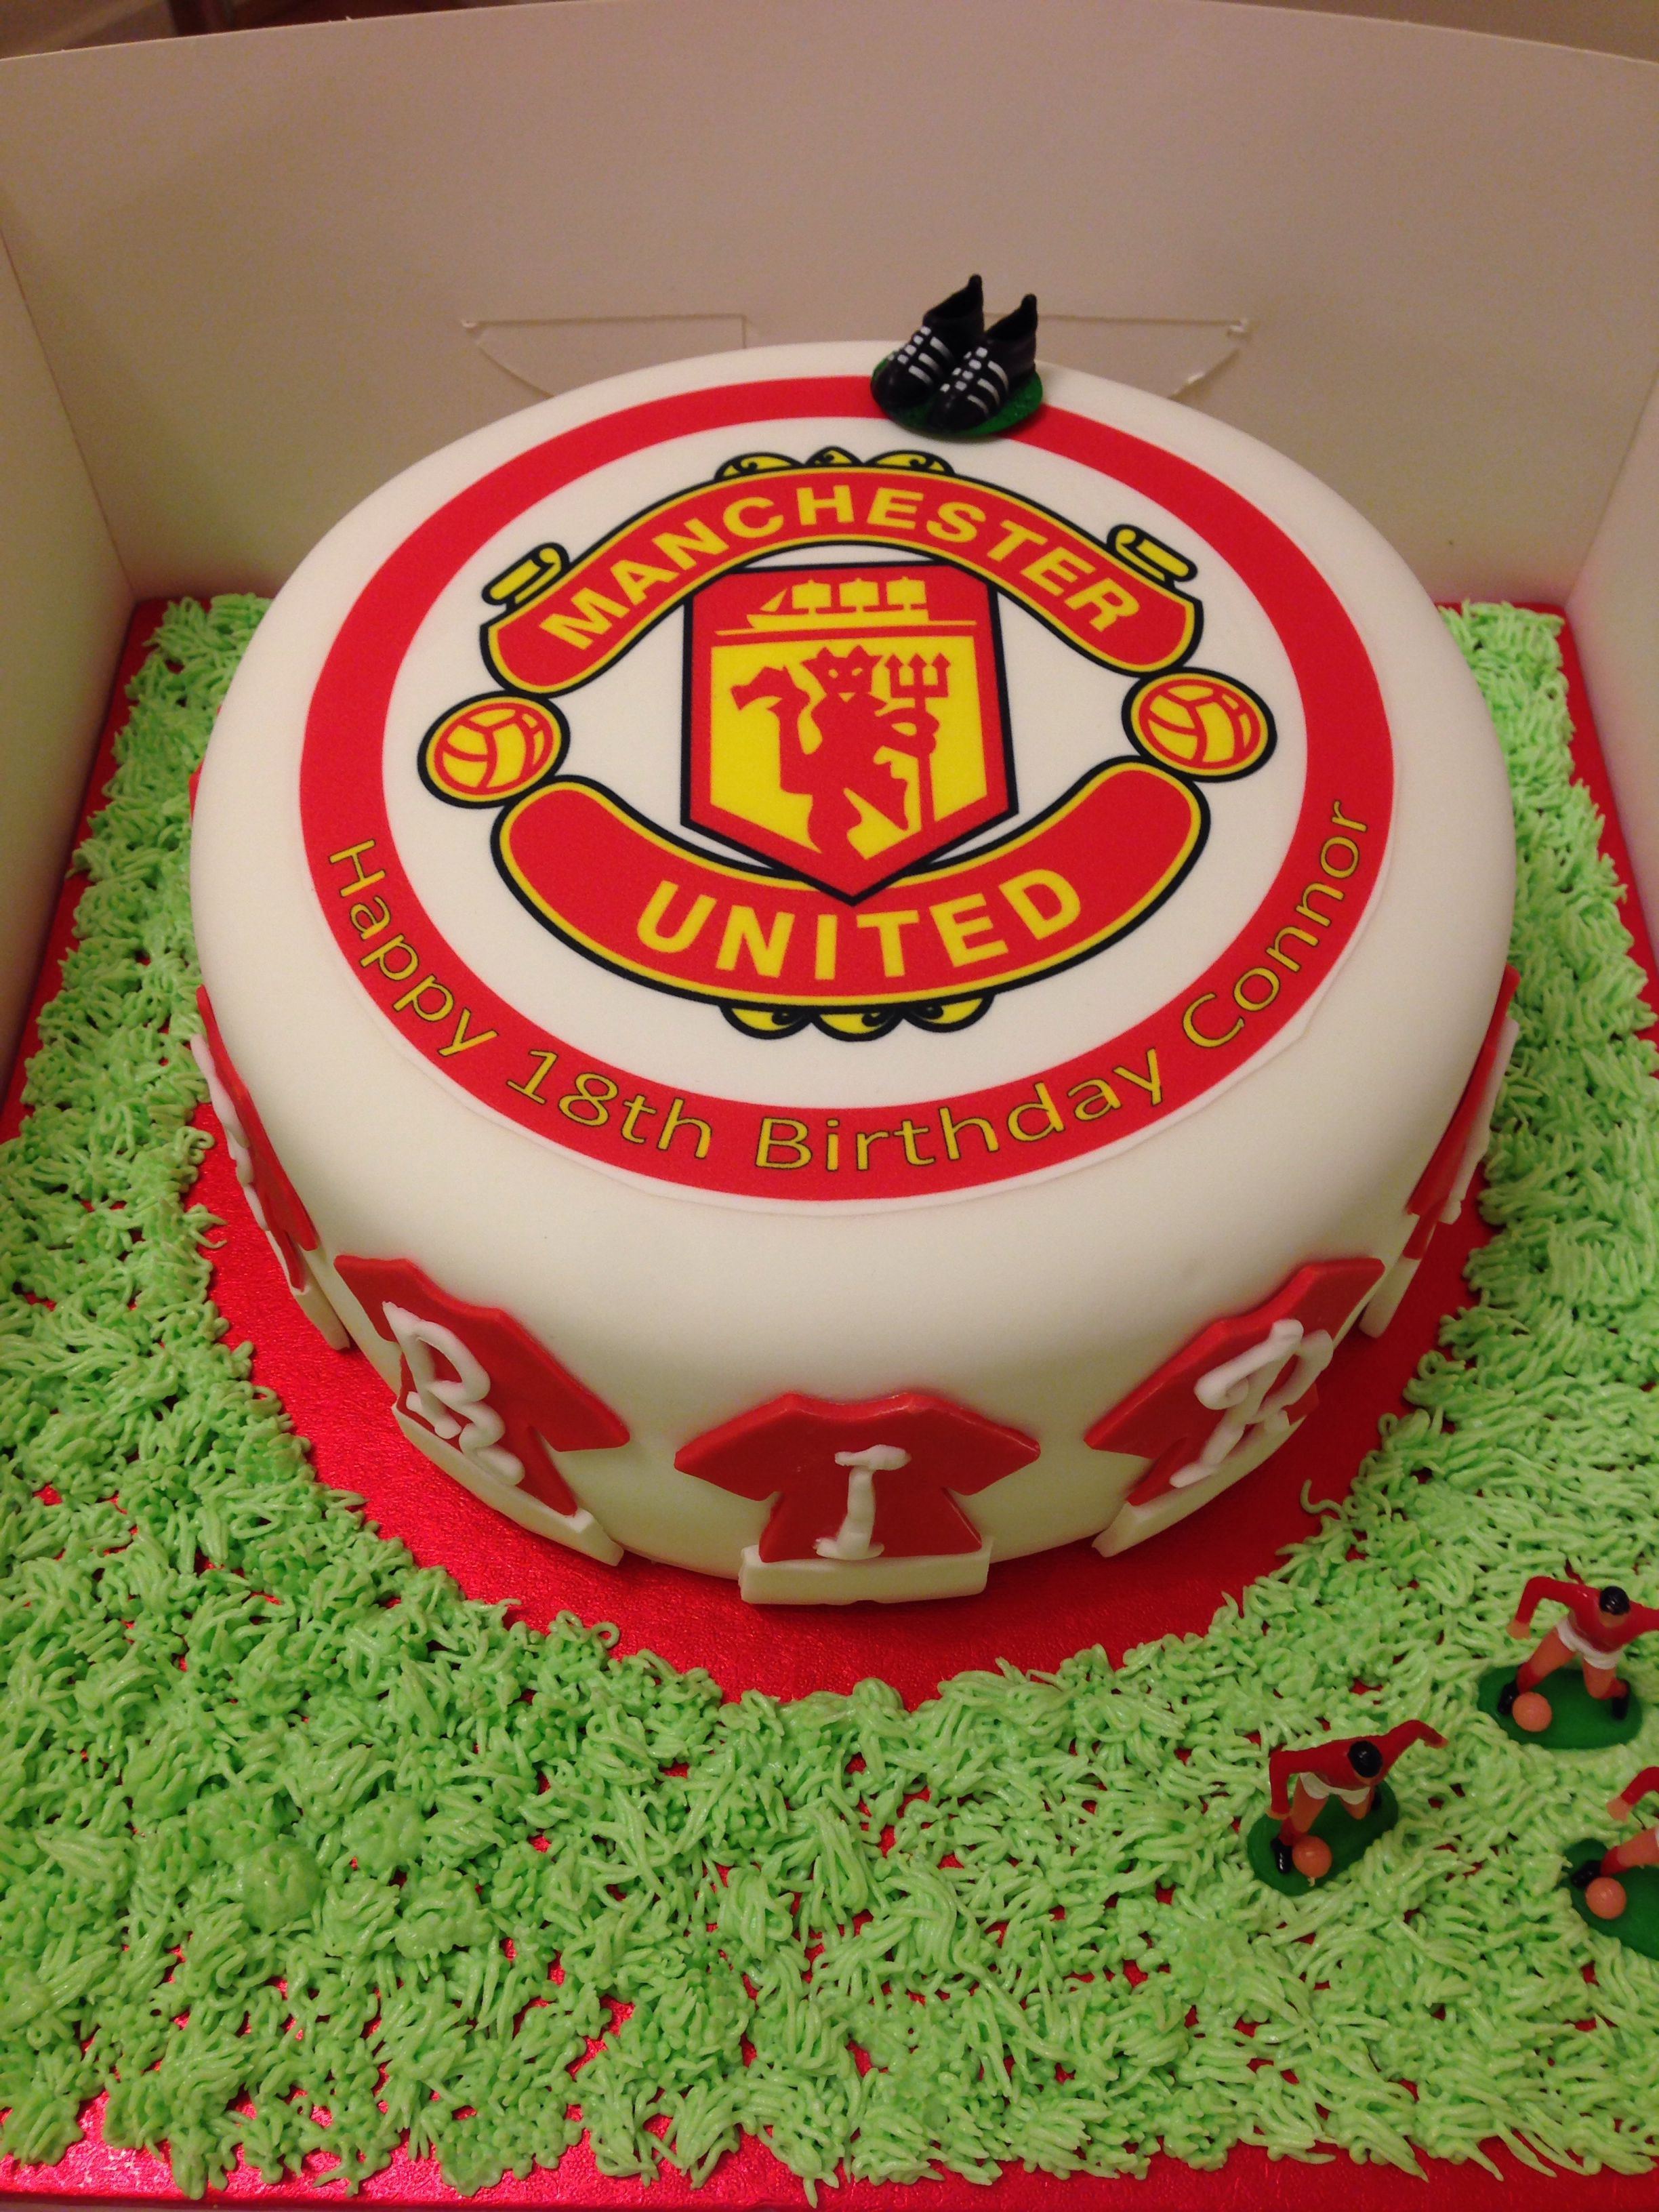 A Manchester United Chocolate Fudge Cake Made By Yours Truly For My Brothers 18th Birthday Cake Designs Birthday Chocolate Fudge Cake Boy Birthday Cake